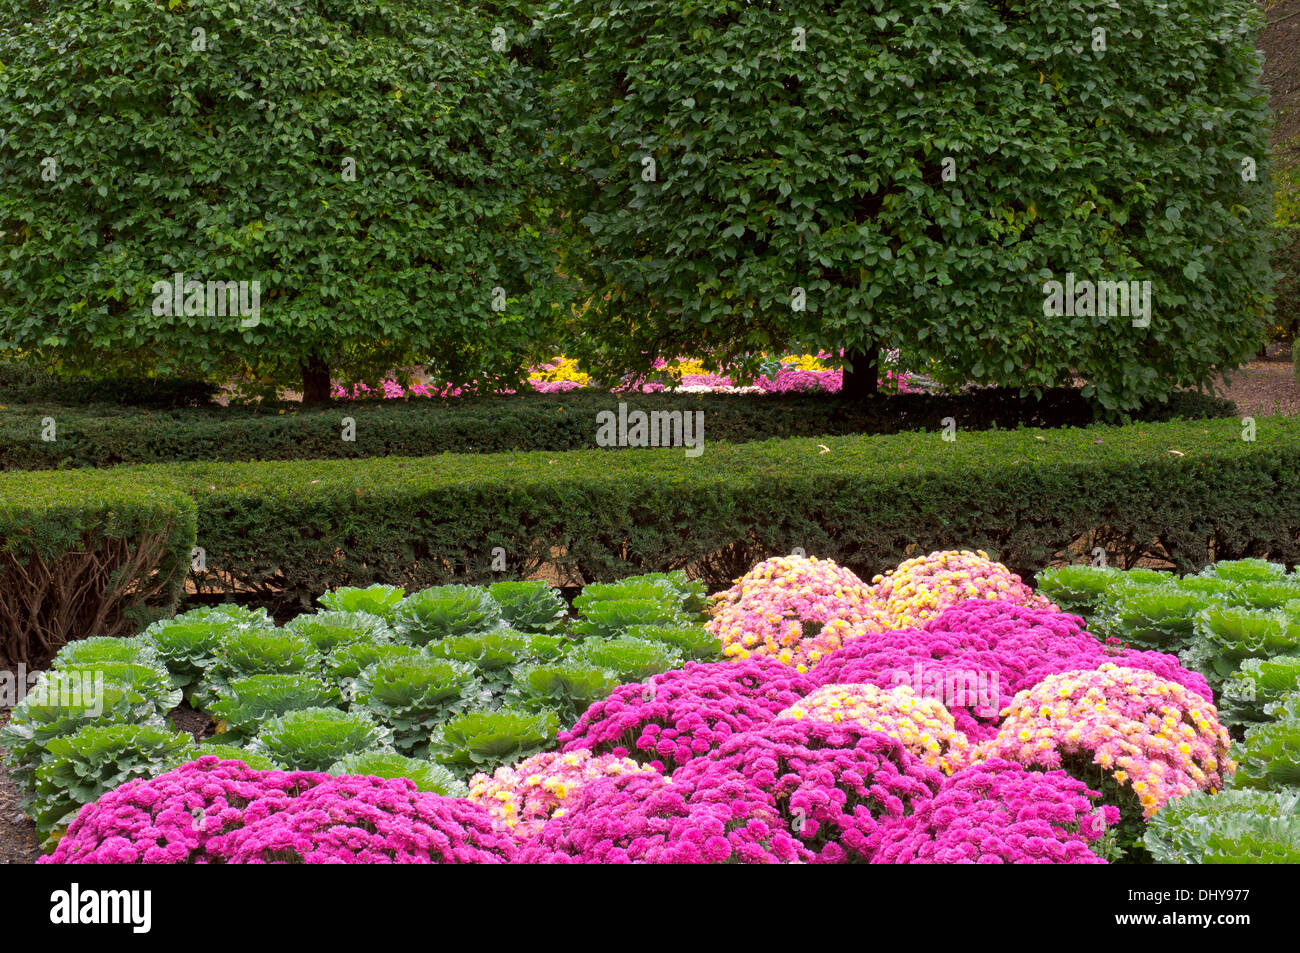 border plants bedding plants stock photos  border plants bedding, Beautiful flower